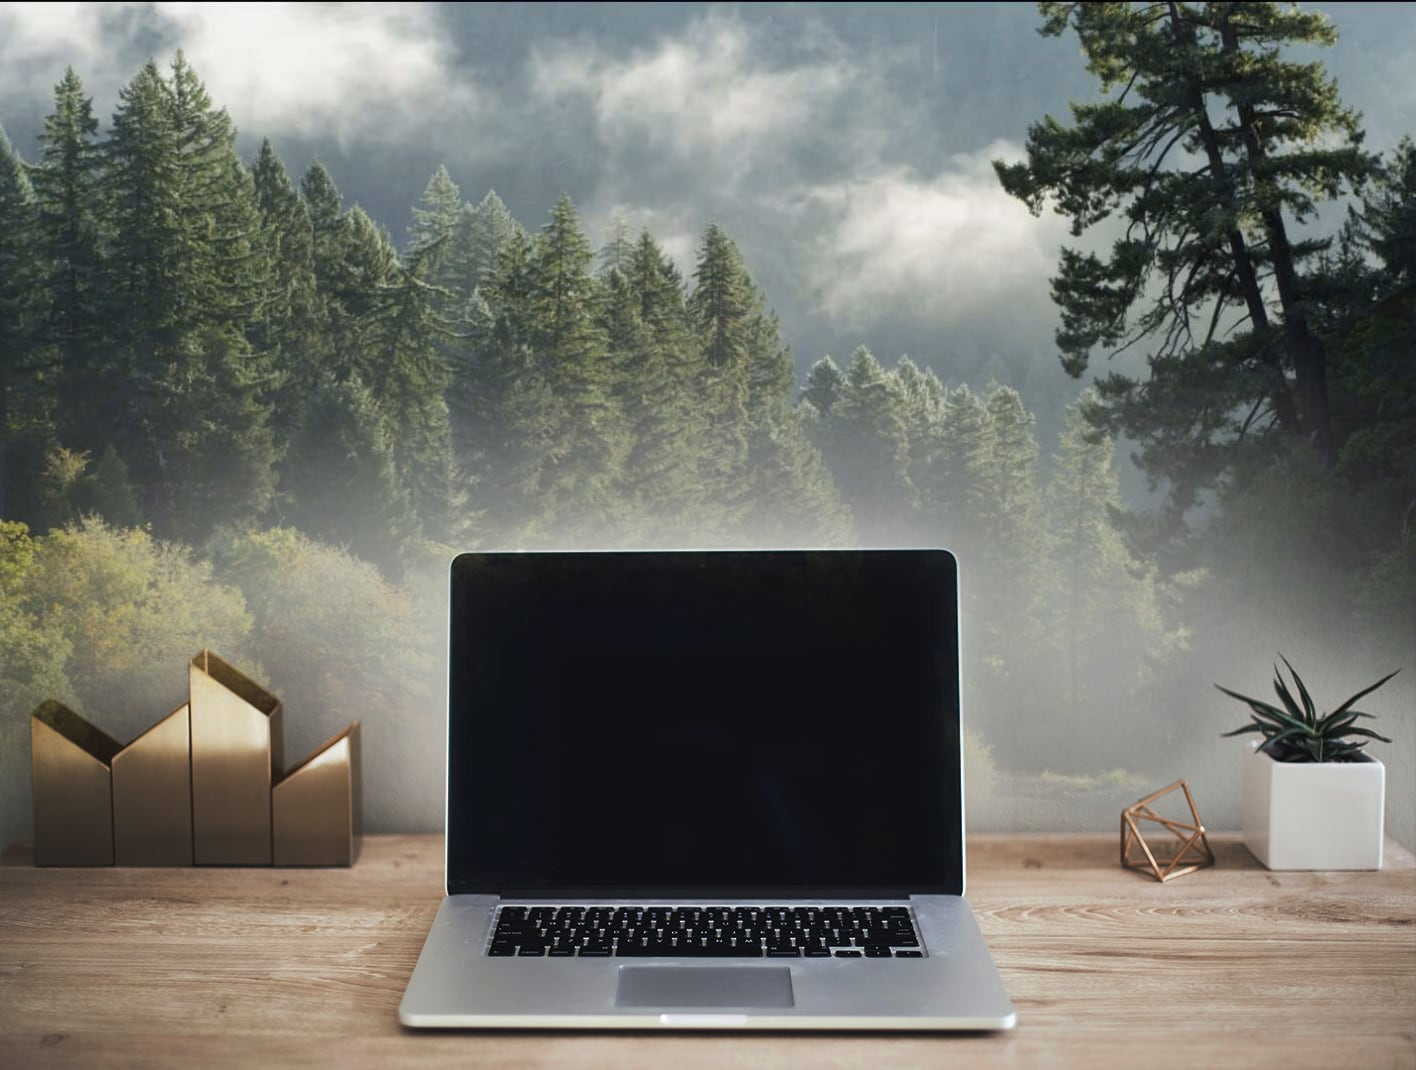 Photo of office desk surrounded by trees